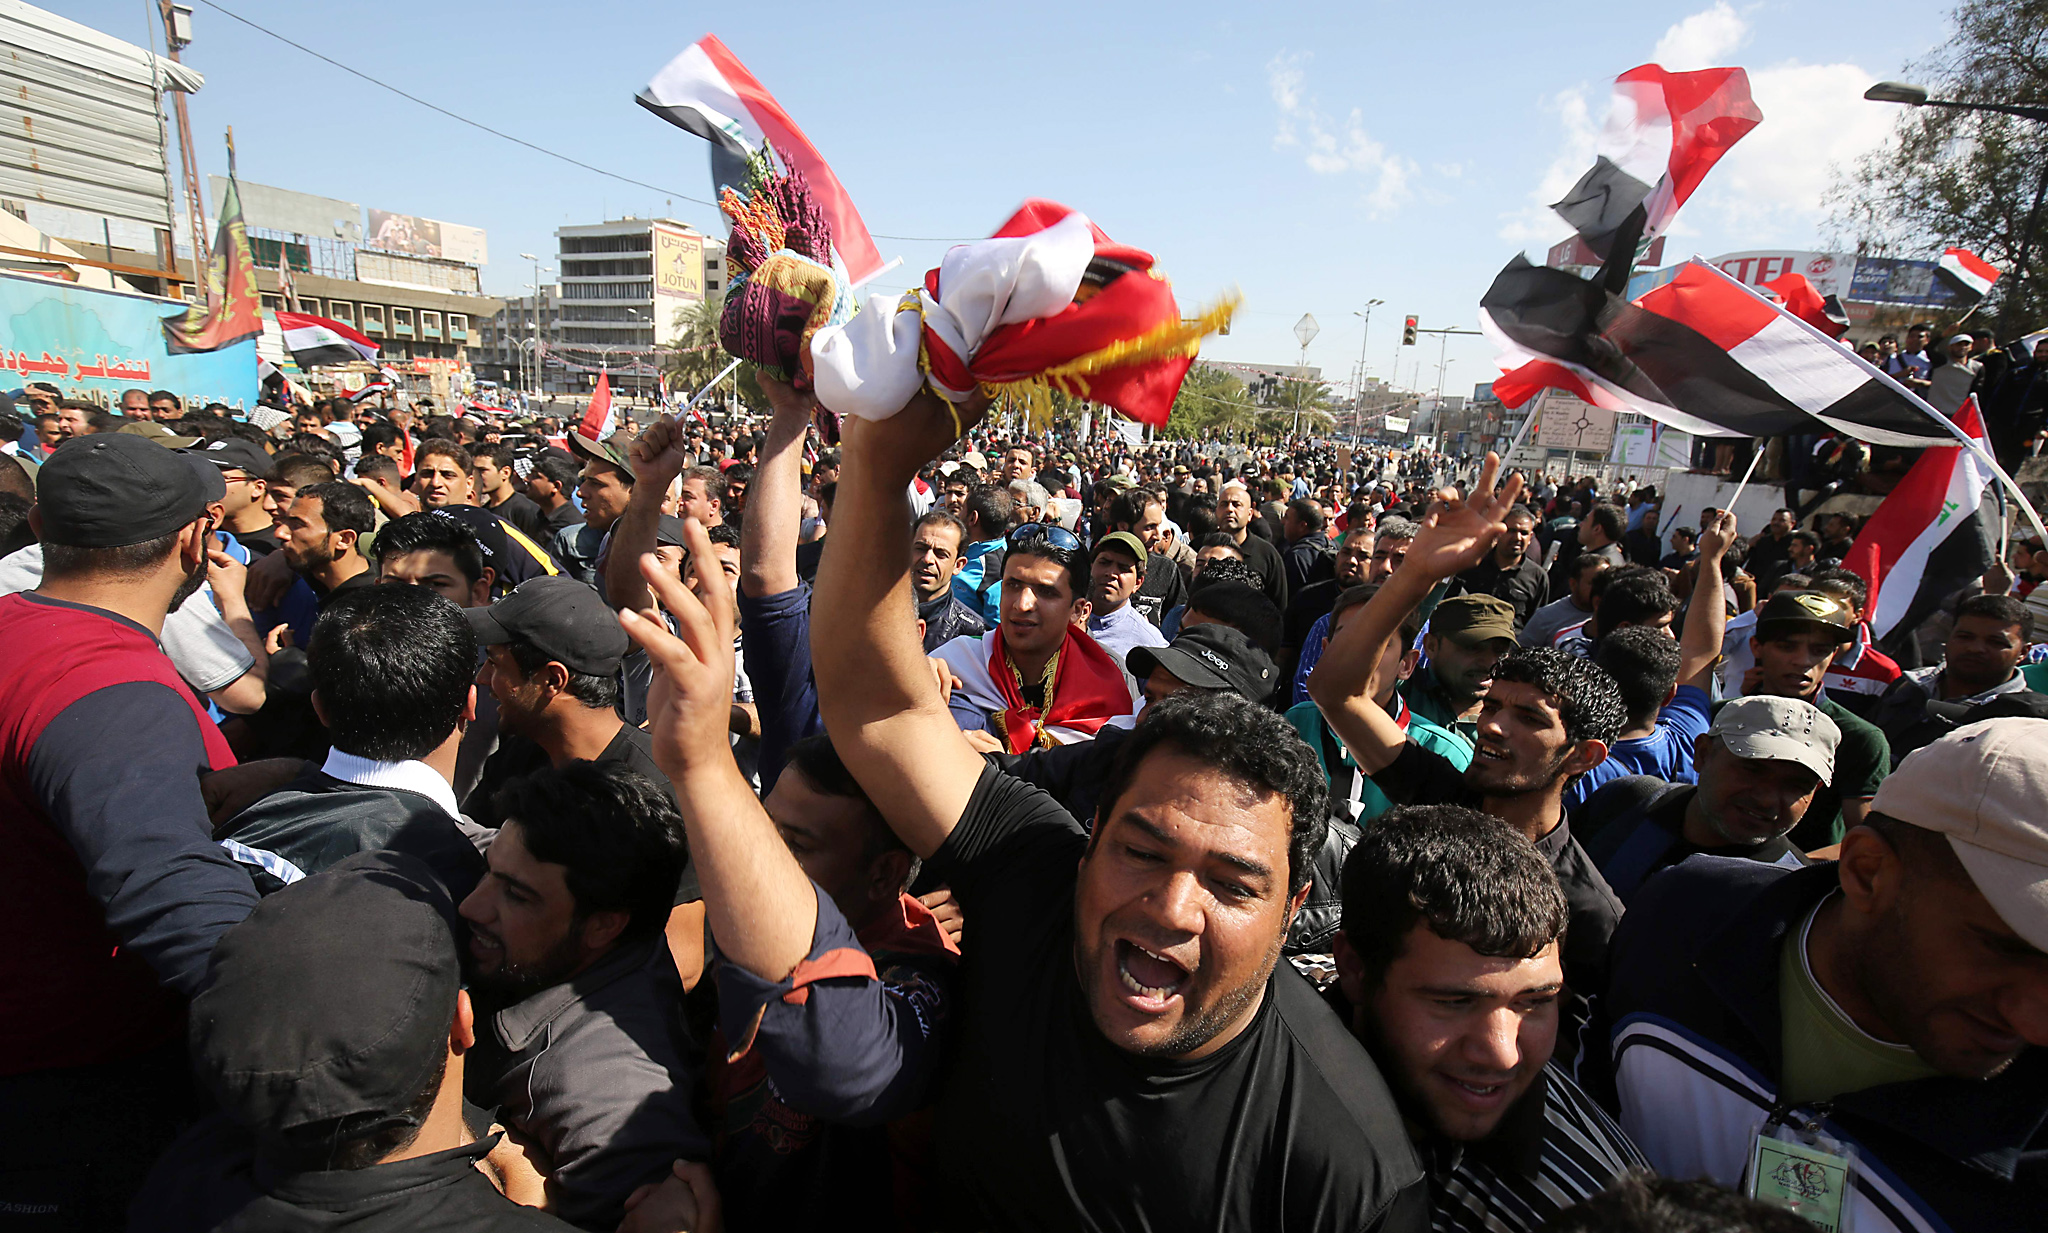 Supporters of Iraqi Shiite cleric Moqtad...Supporters of Iraqi Shiite cleric Moqtada al-Sadr wave national flags during a demonstration calling for governmental reform and elimination of corruption on March 18, 2016, outside the main gates of Baghdad's Green Zone. Thousands of supporters of Iraqi cleric Moqtada Sadr defied a government ban to launch sit-ins at the main gates of Baghdad's Green Zone aimed at pushing for reforms. / AFP PHOTO / AHMAD AL-RUBAYEAHMAD AL-RUBAYE/AFP/Getty Images